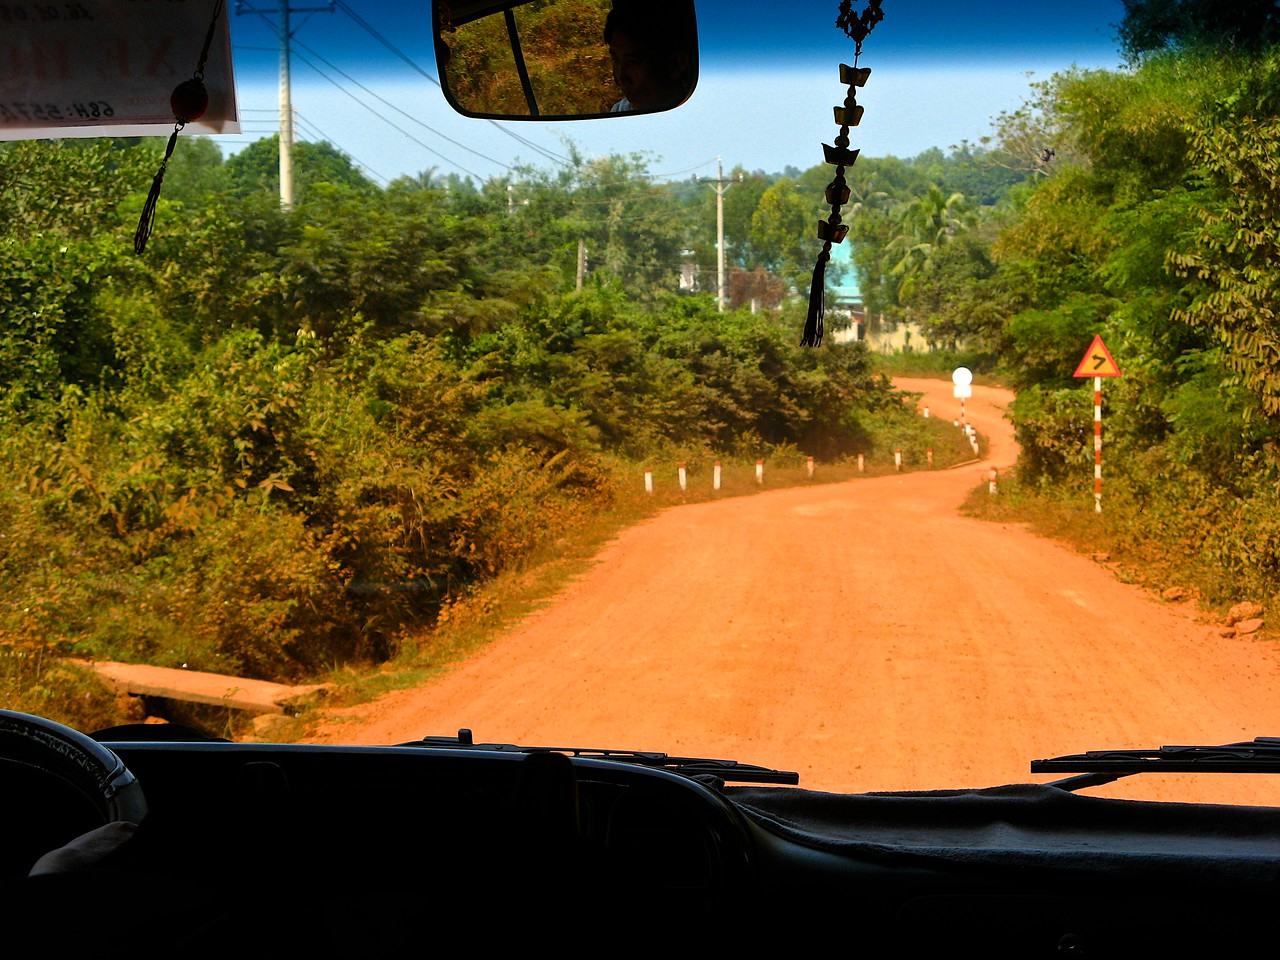 Phu Quoc isn't real big on infrastructure, so many roads are dirt roads leading to resorts on the island.